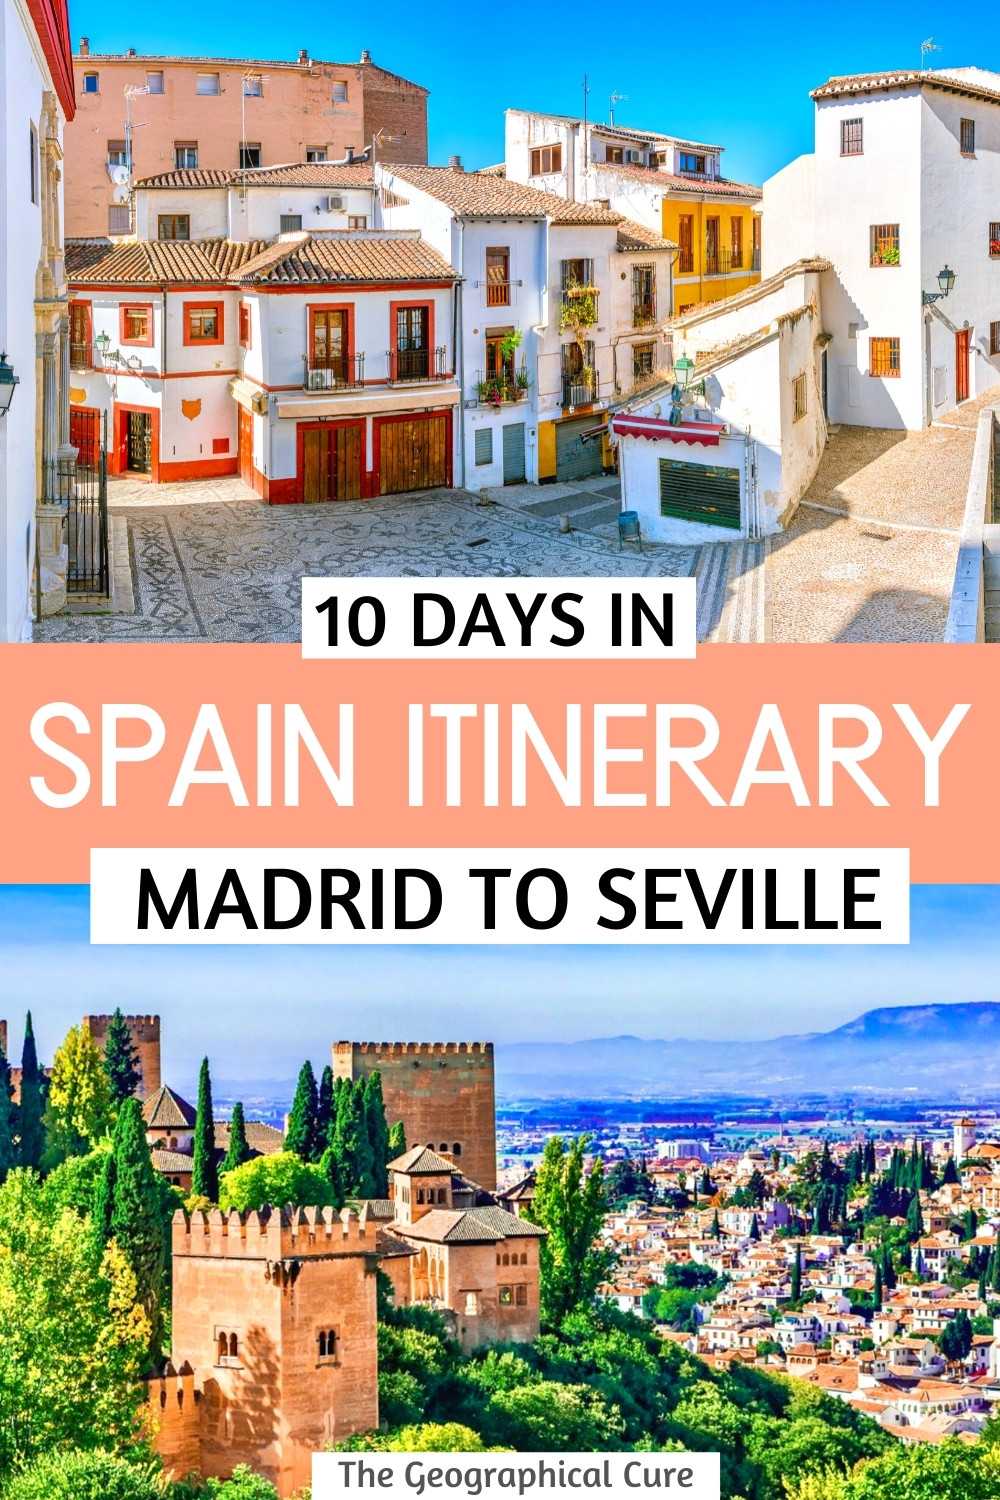 How To Spend 10 Days in Spain: Road Trip From Madrid To seville